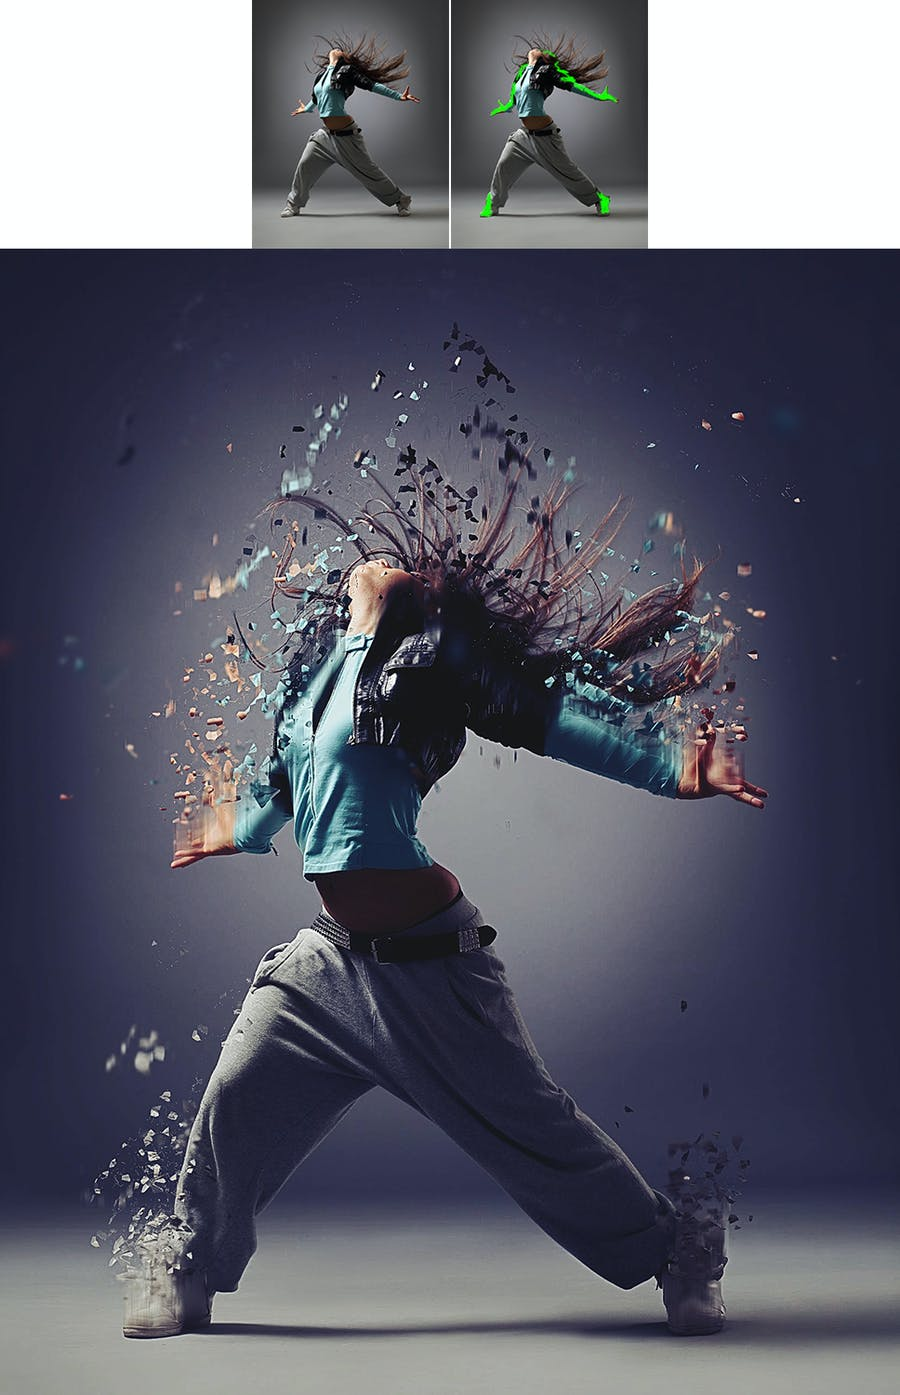 Dispersion Photoshop Action - 3